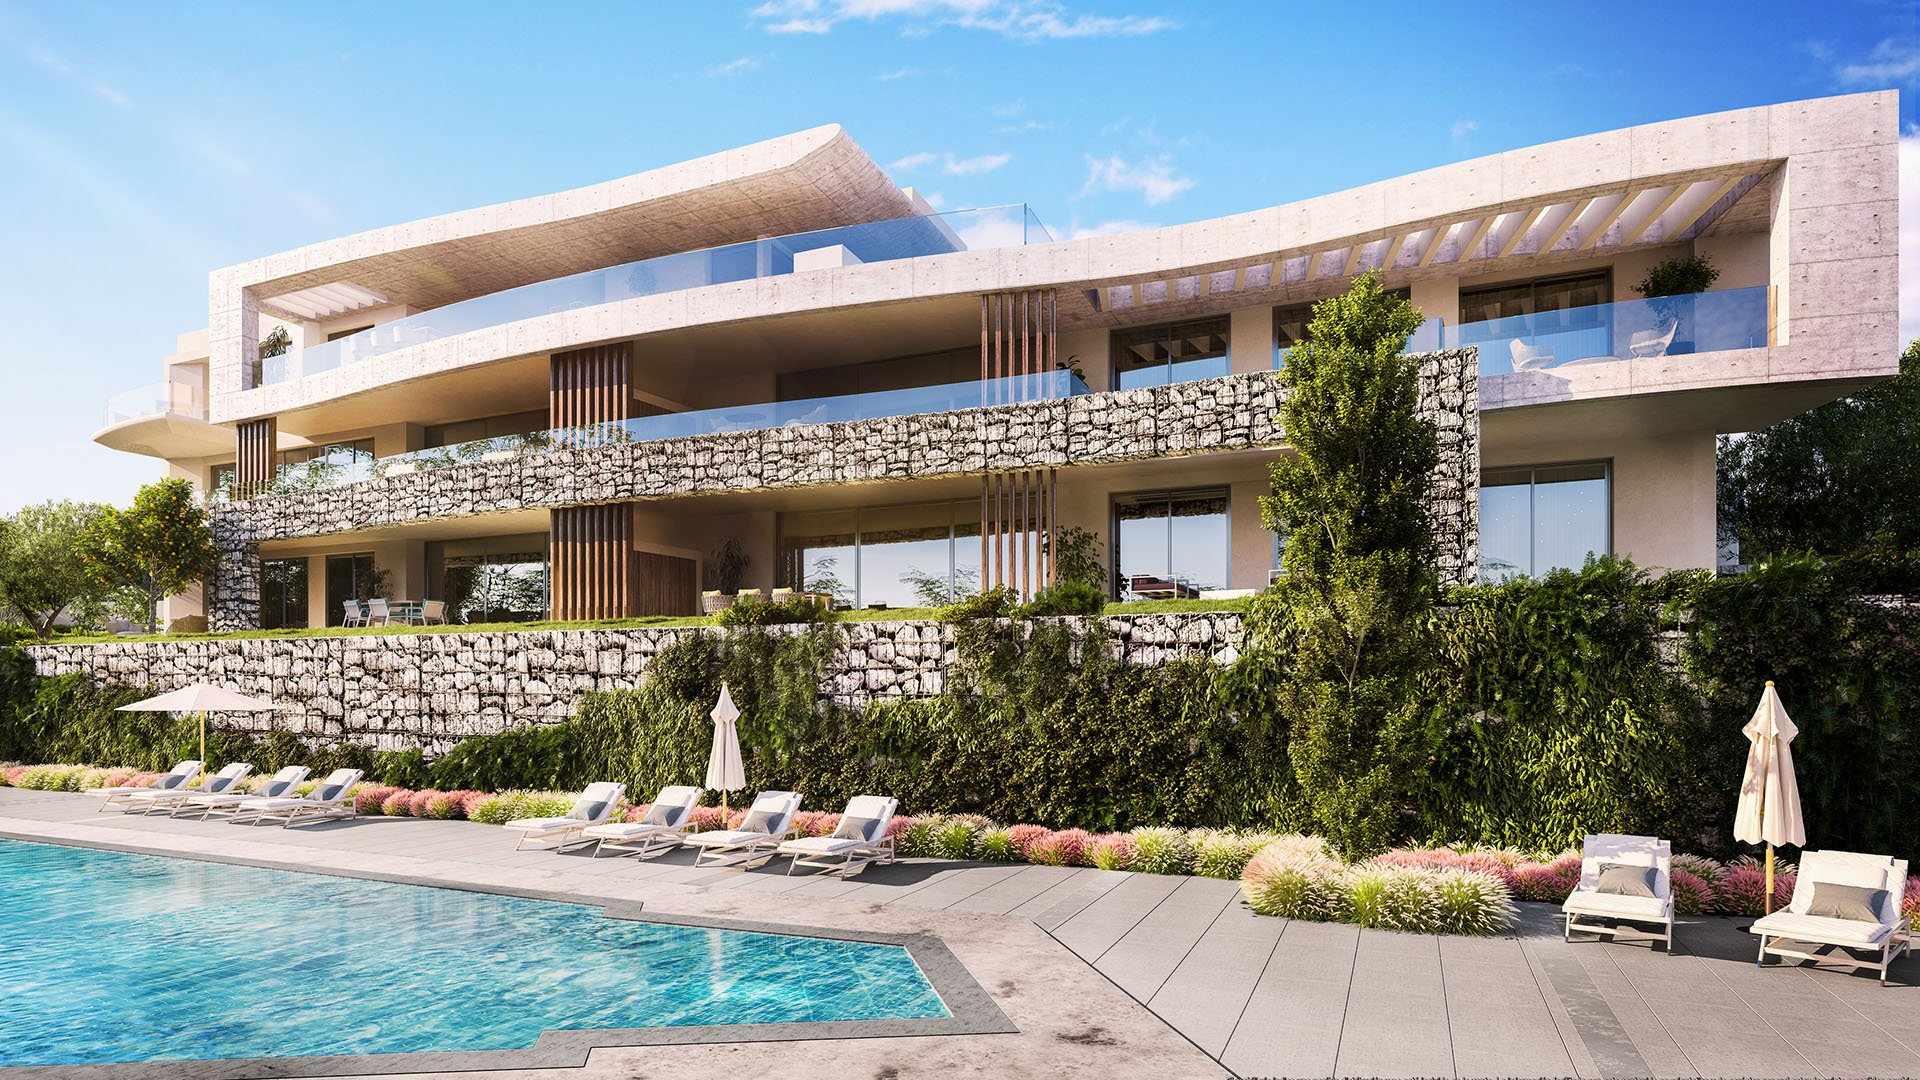 Quercus in Real de La Quinta: Impressive resort with affordable luxury apartments